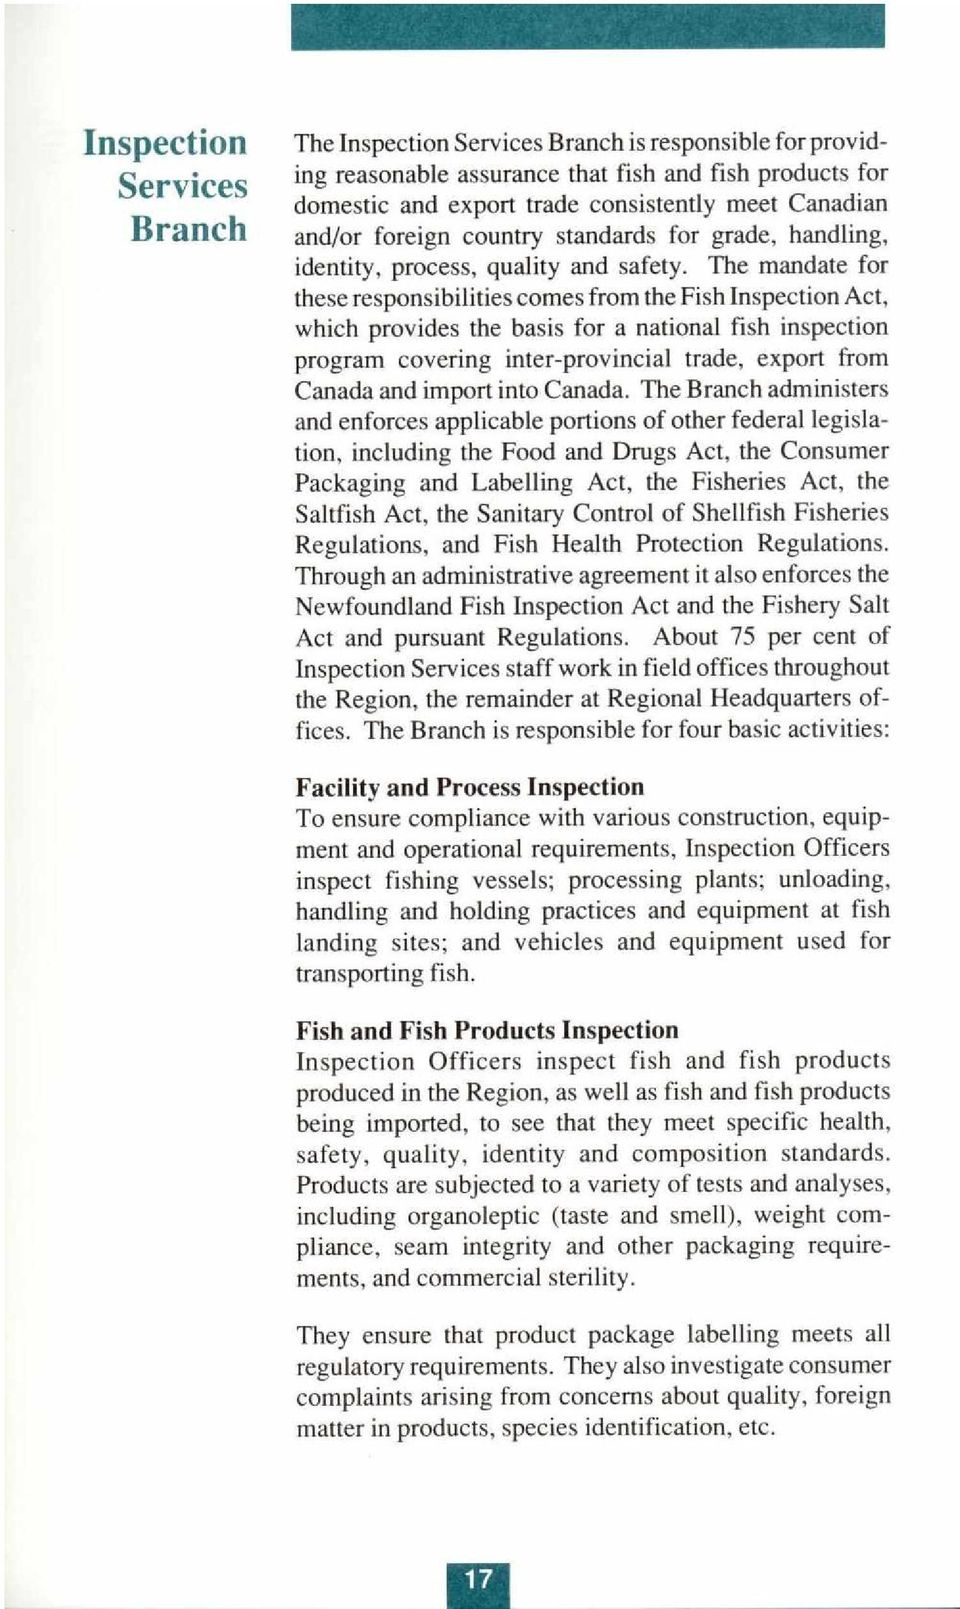 The mandate for these responsibilities comes from the Fish Inspection Act, which provides the basis for a national fish inspection program covering inter-provincial trade, export from Canada and